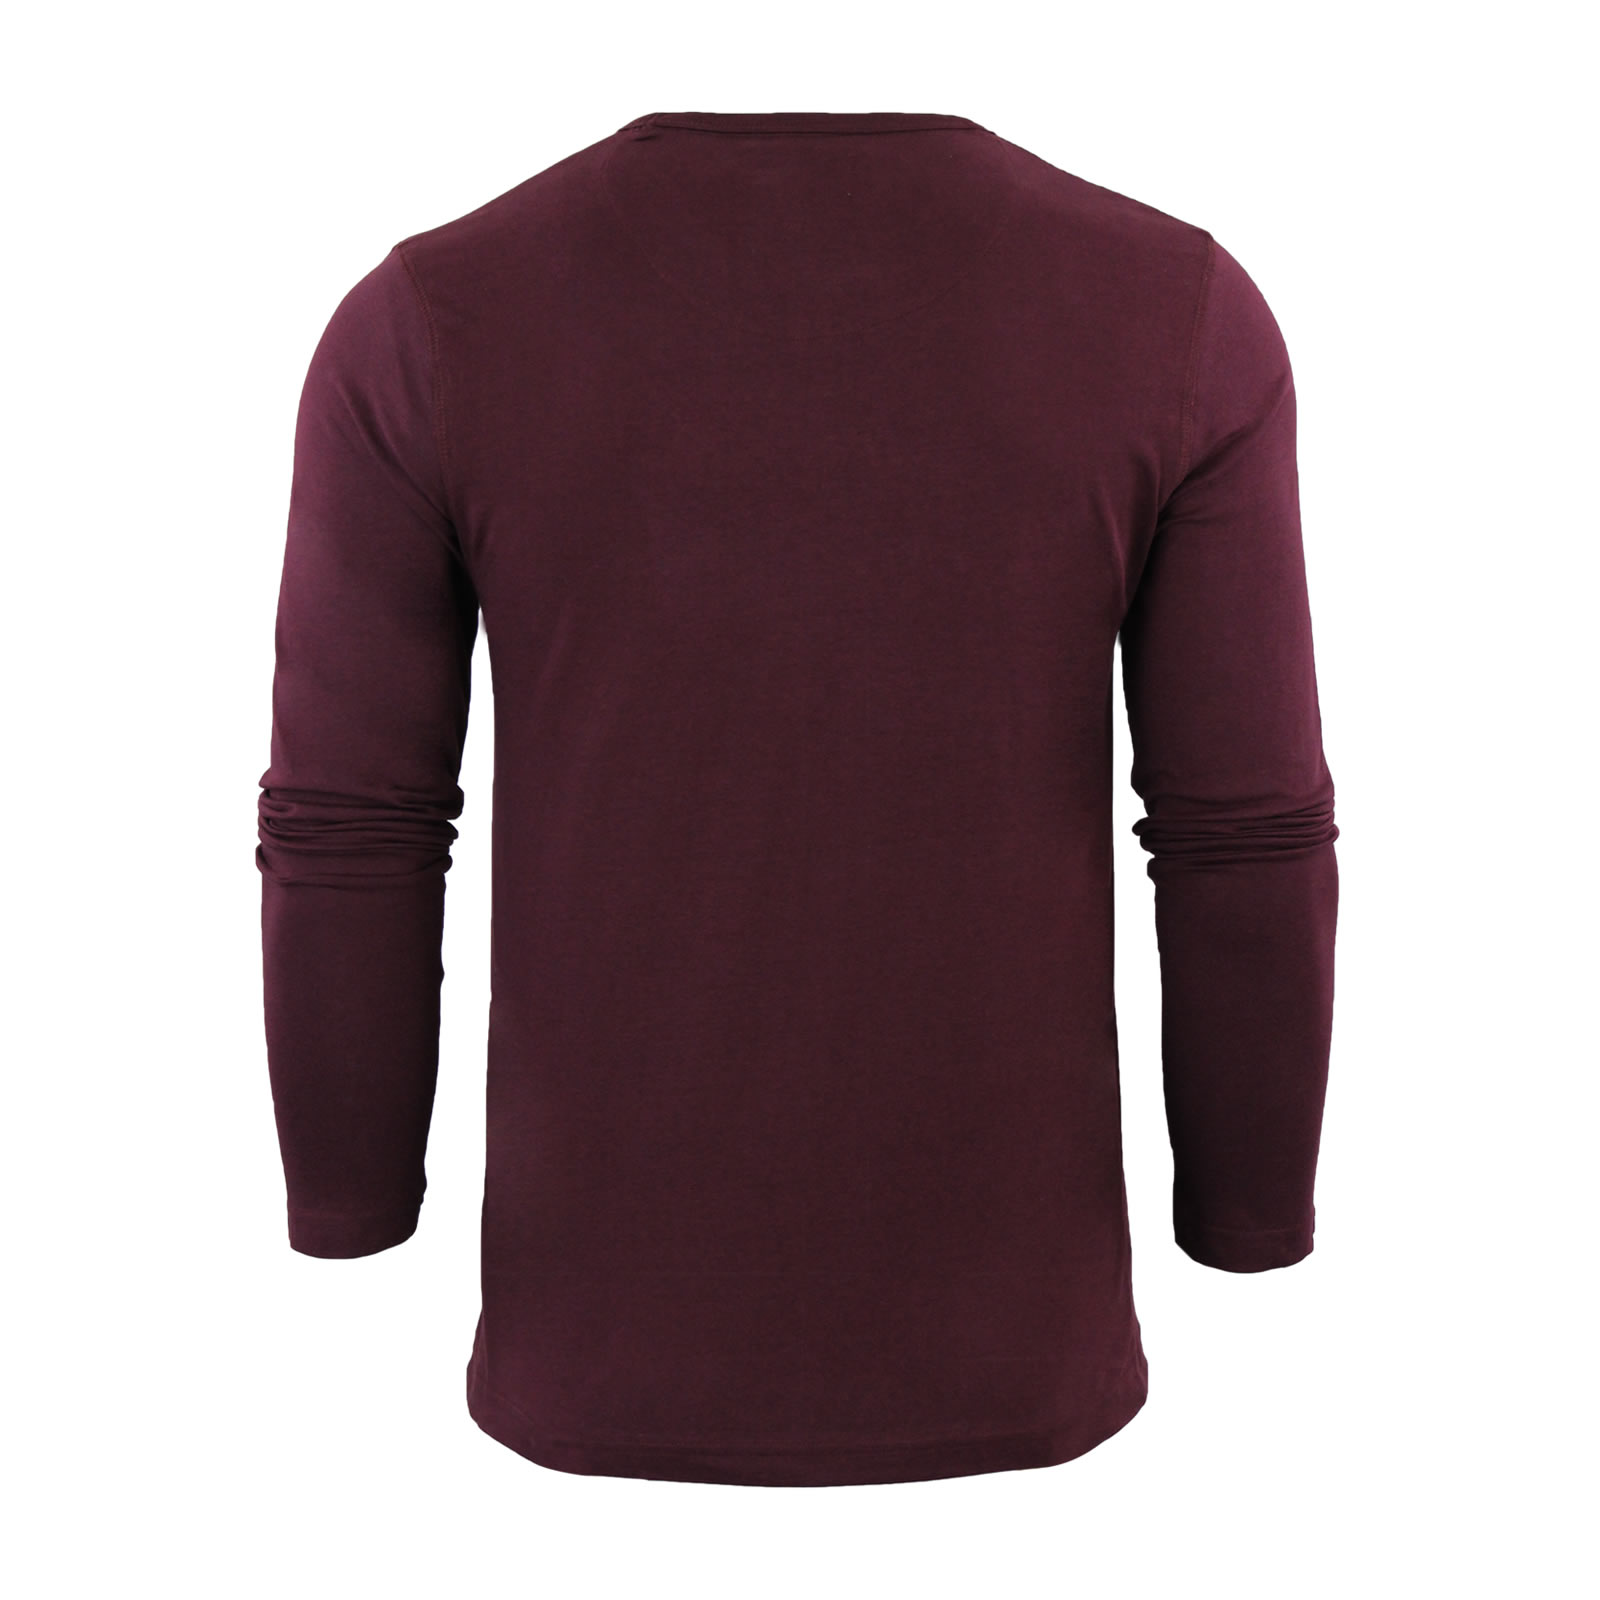 Mens-T-Shirt-by-Brave-Soul-Prague-Cotton-Long-Sleeved-Crew-Neck-Casual-Top thumbnail 21